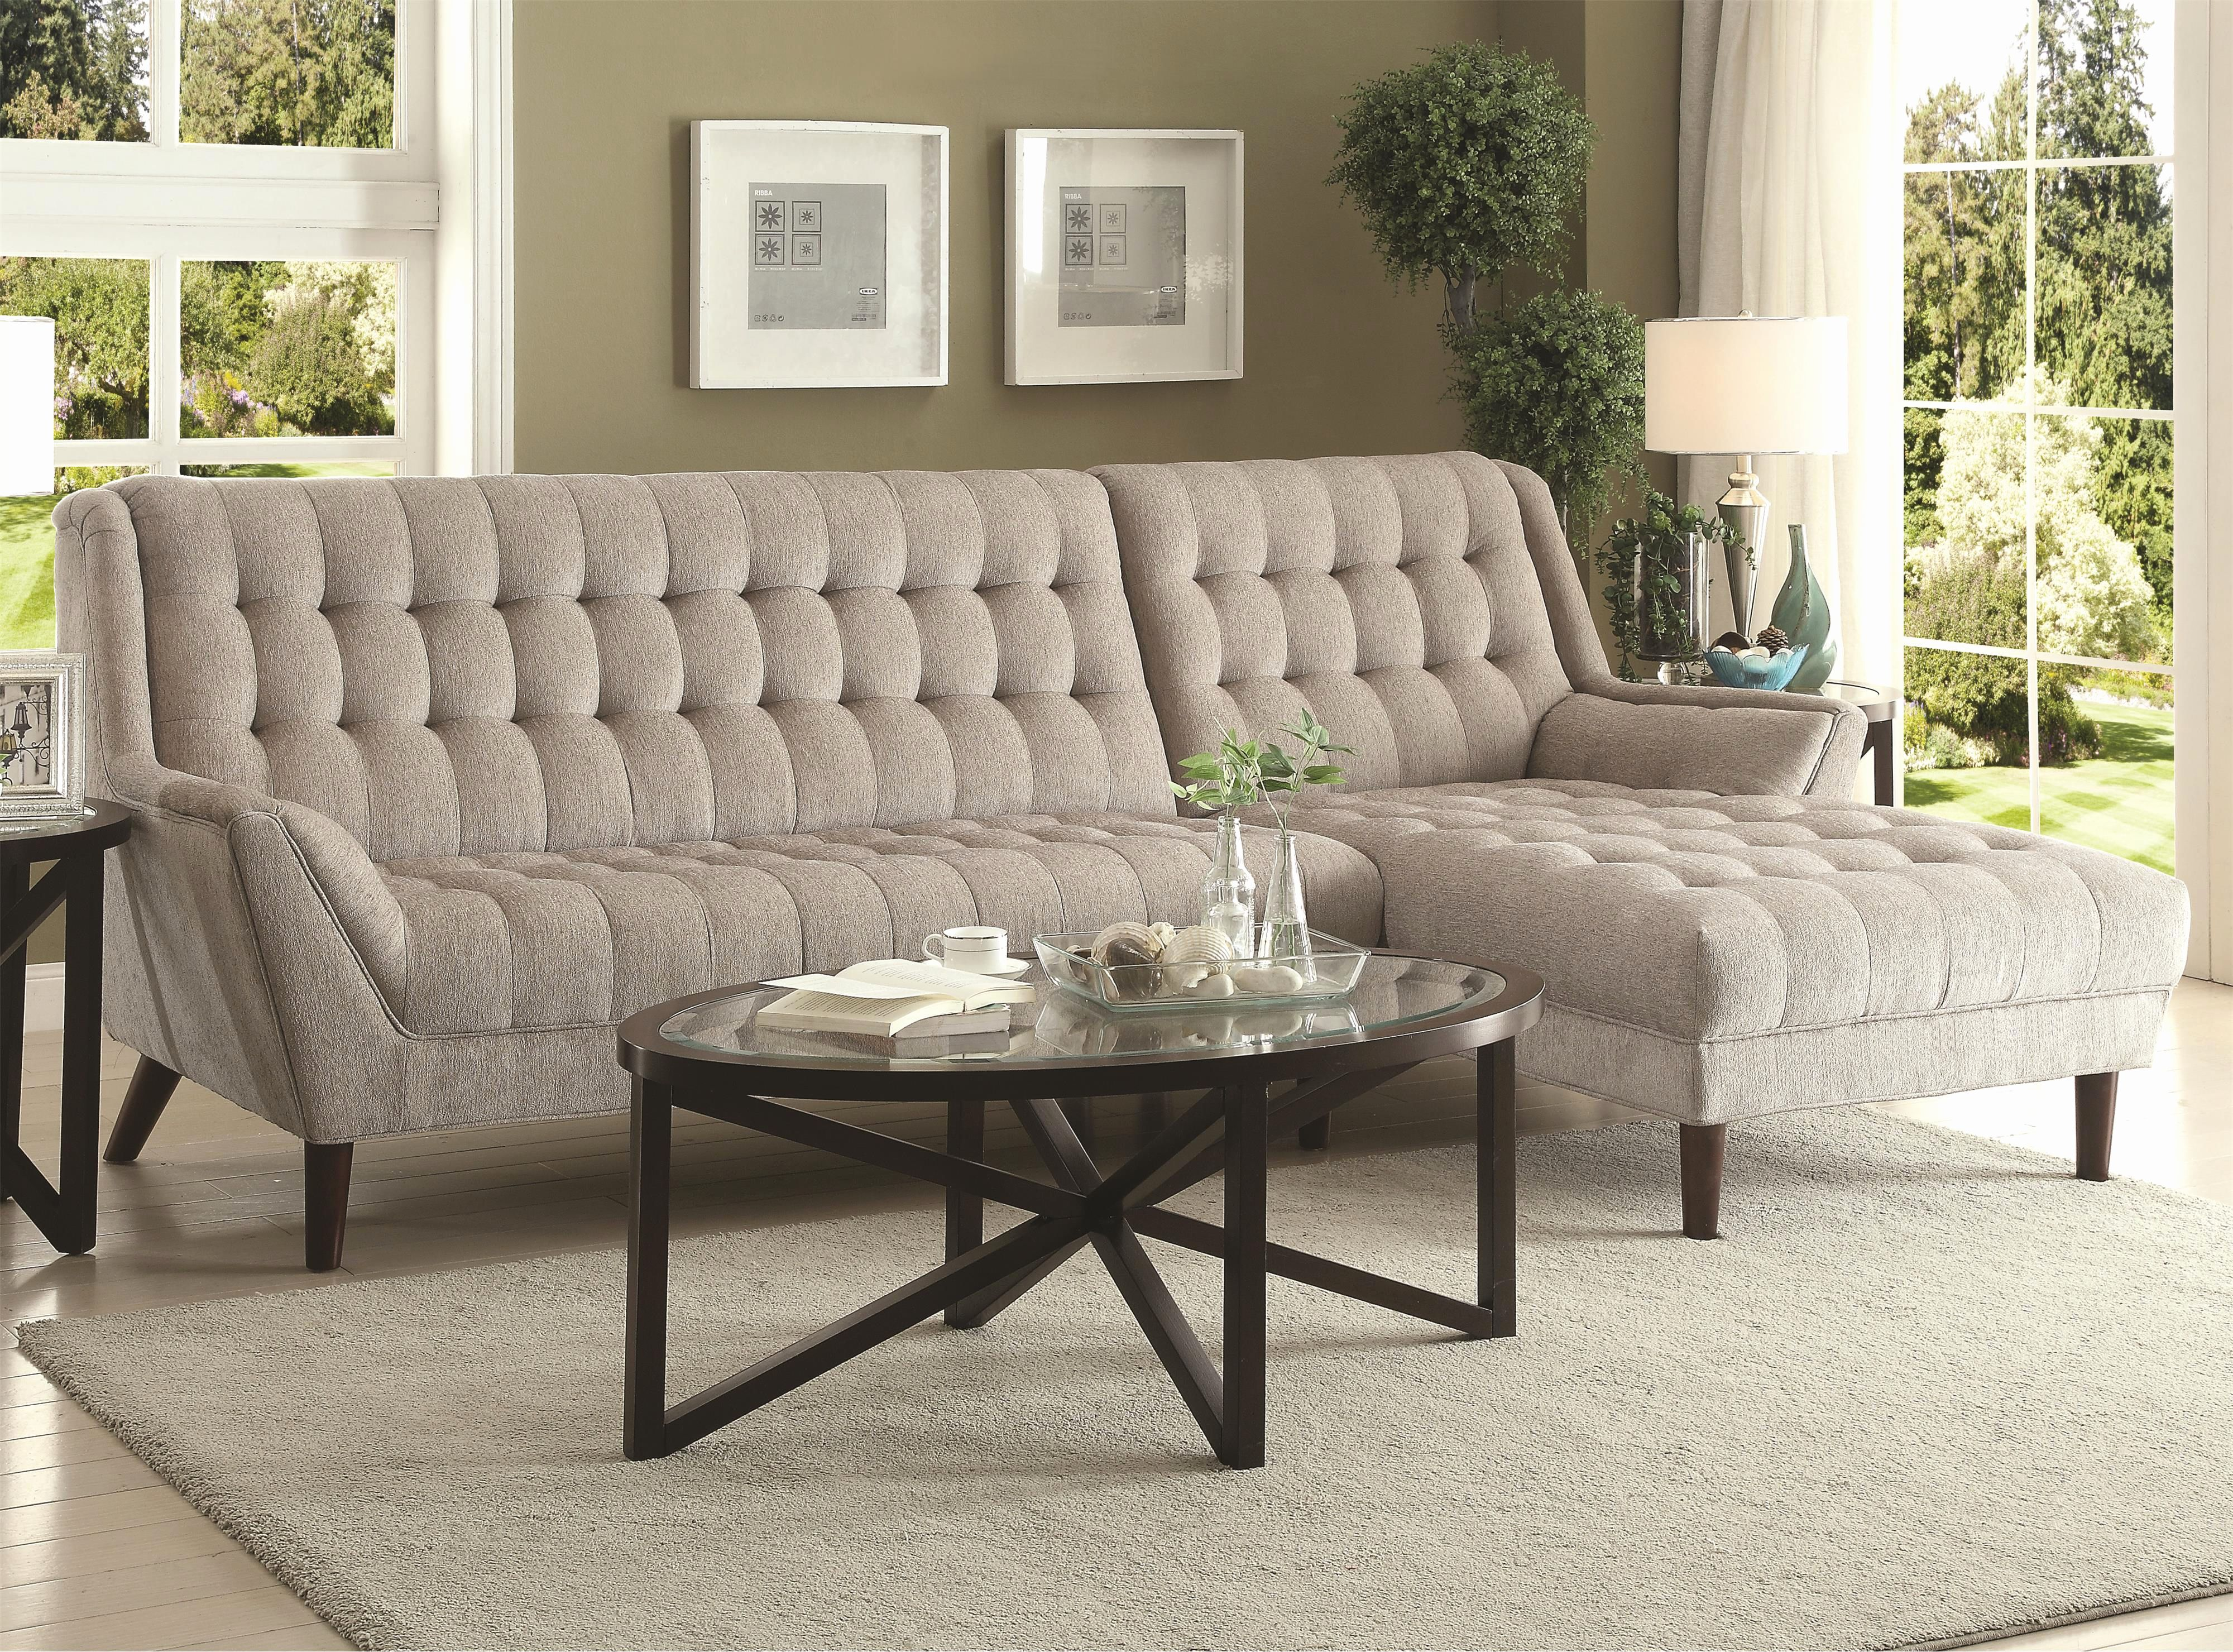 Ideas Contemporary White Leather Sectional Sofa Pics Sofas Amazing